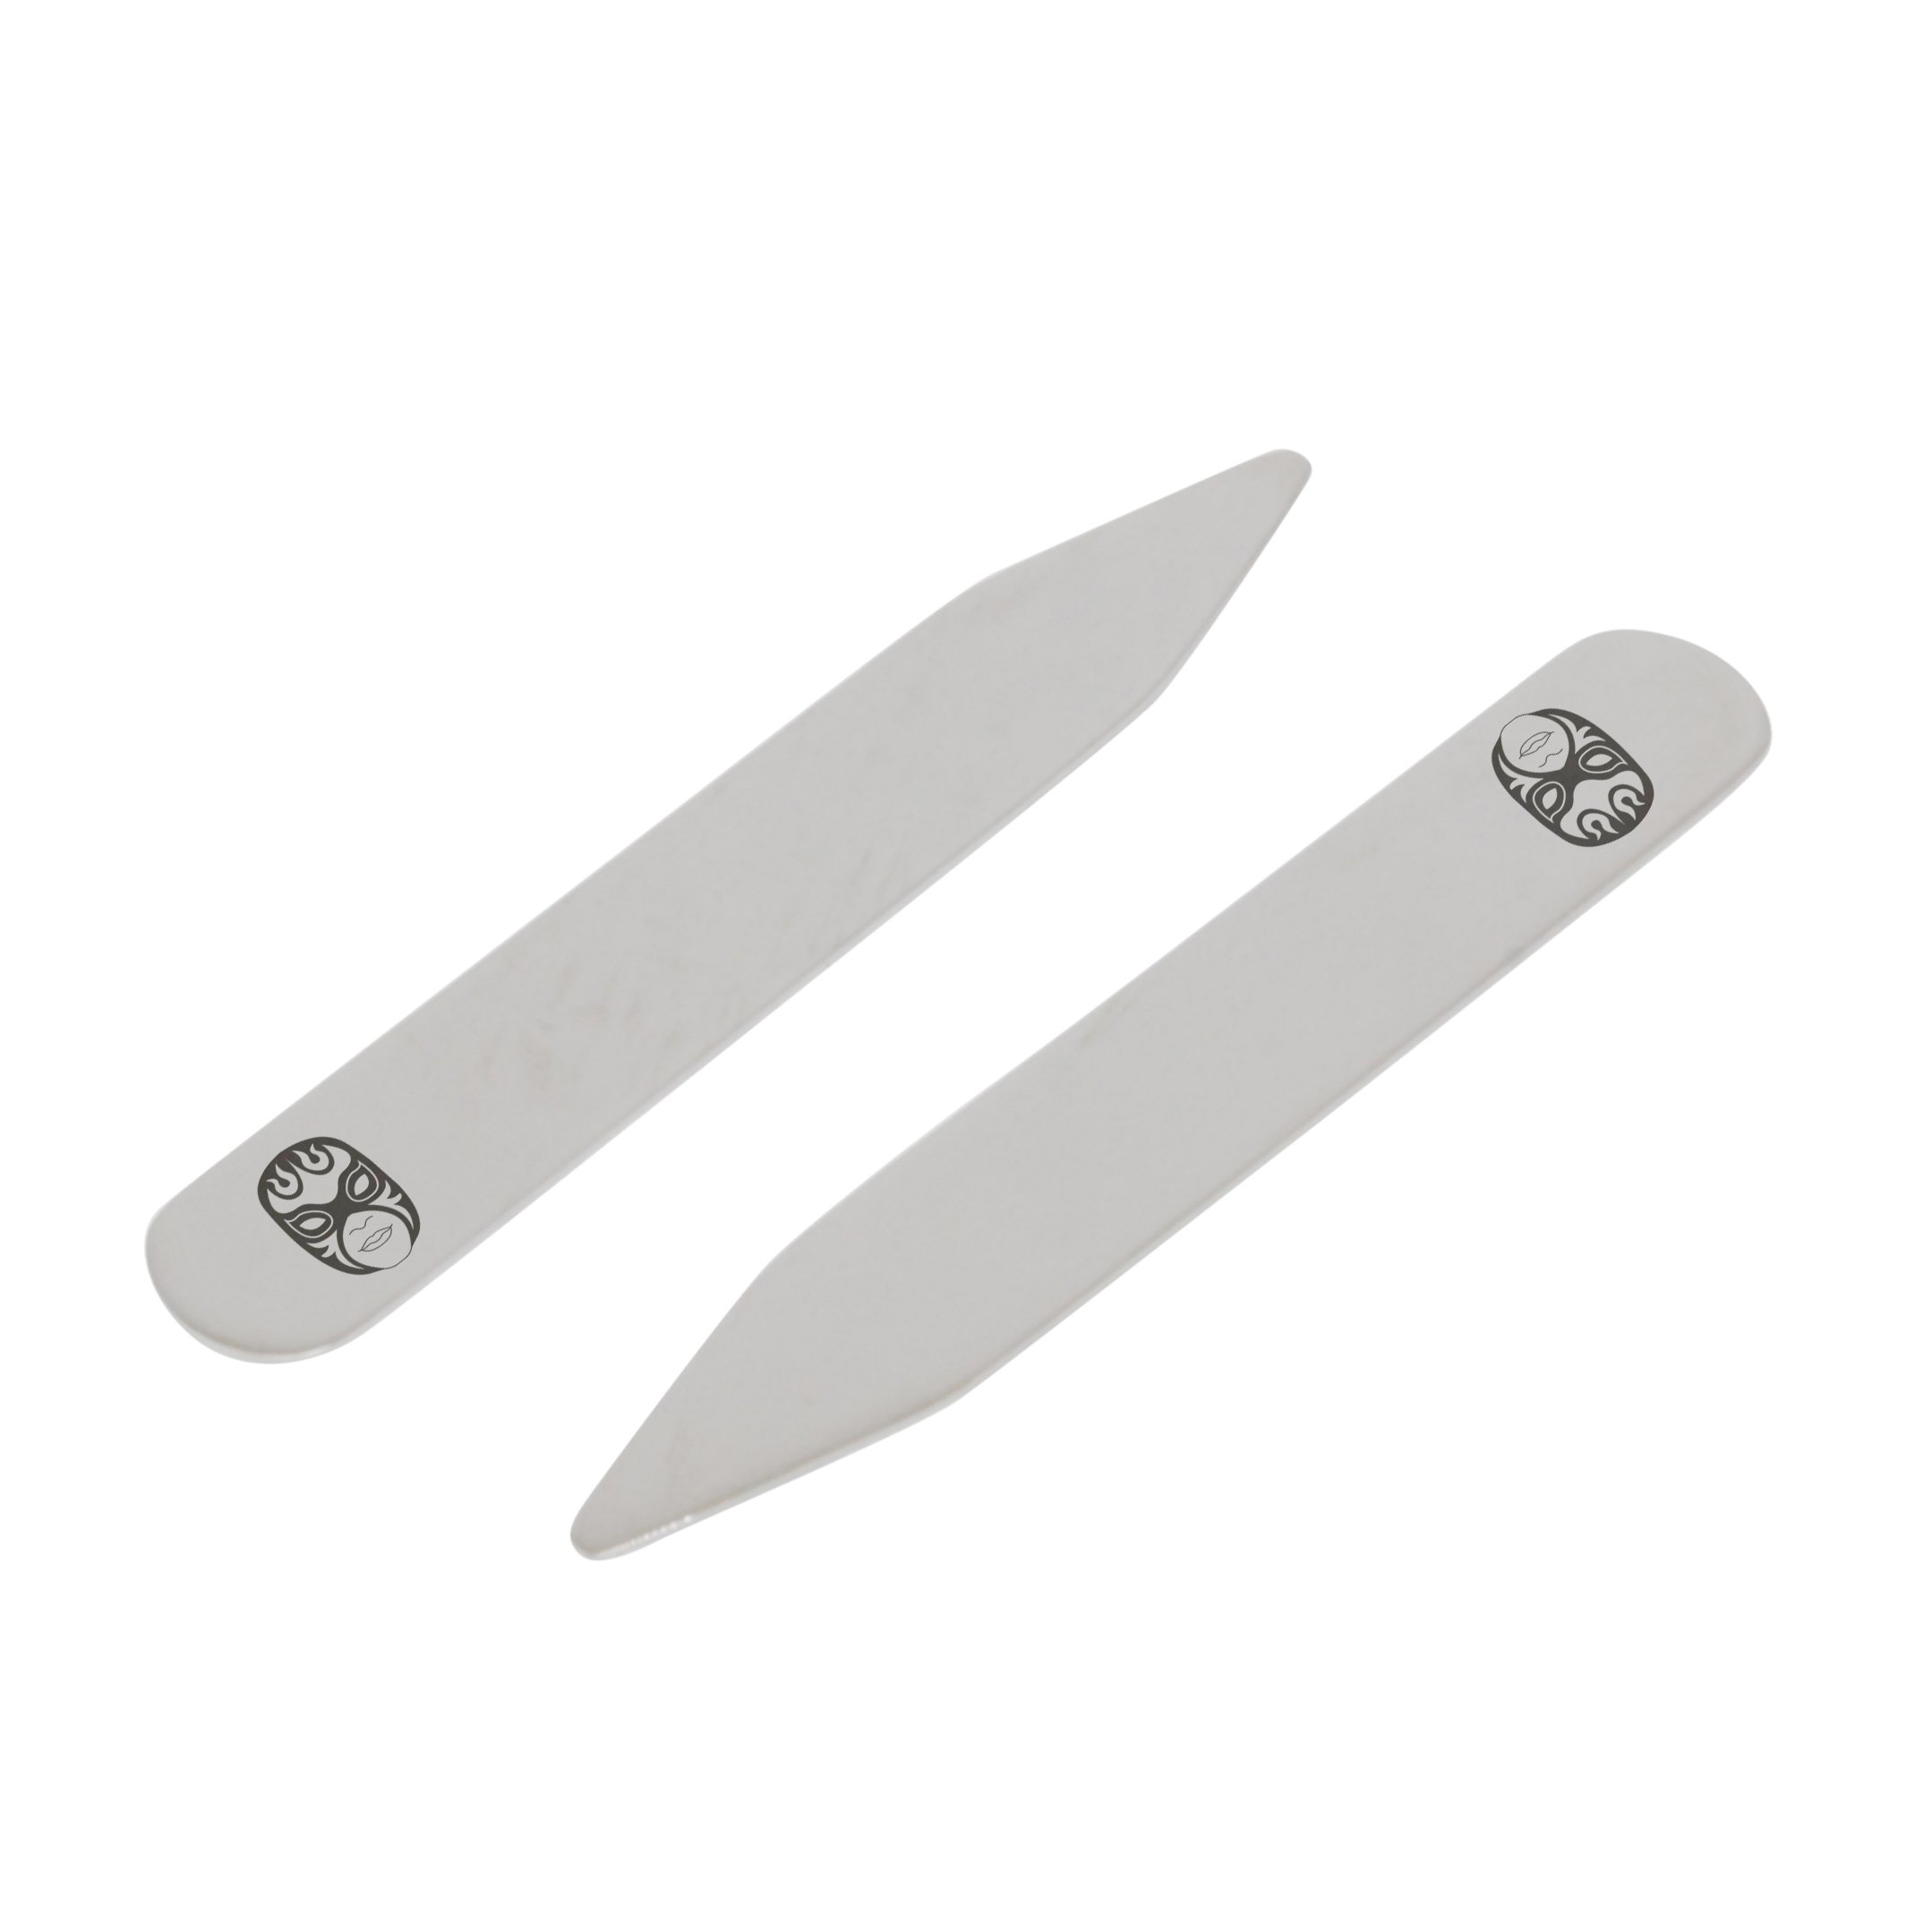 MODERN GOODS SHOP Stainless Steel Collar Stays With Laser Engraved Wrestling Mask Design - 2.5 Inch Metal Collar Stiffeners - Made In USA